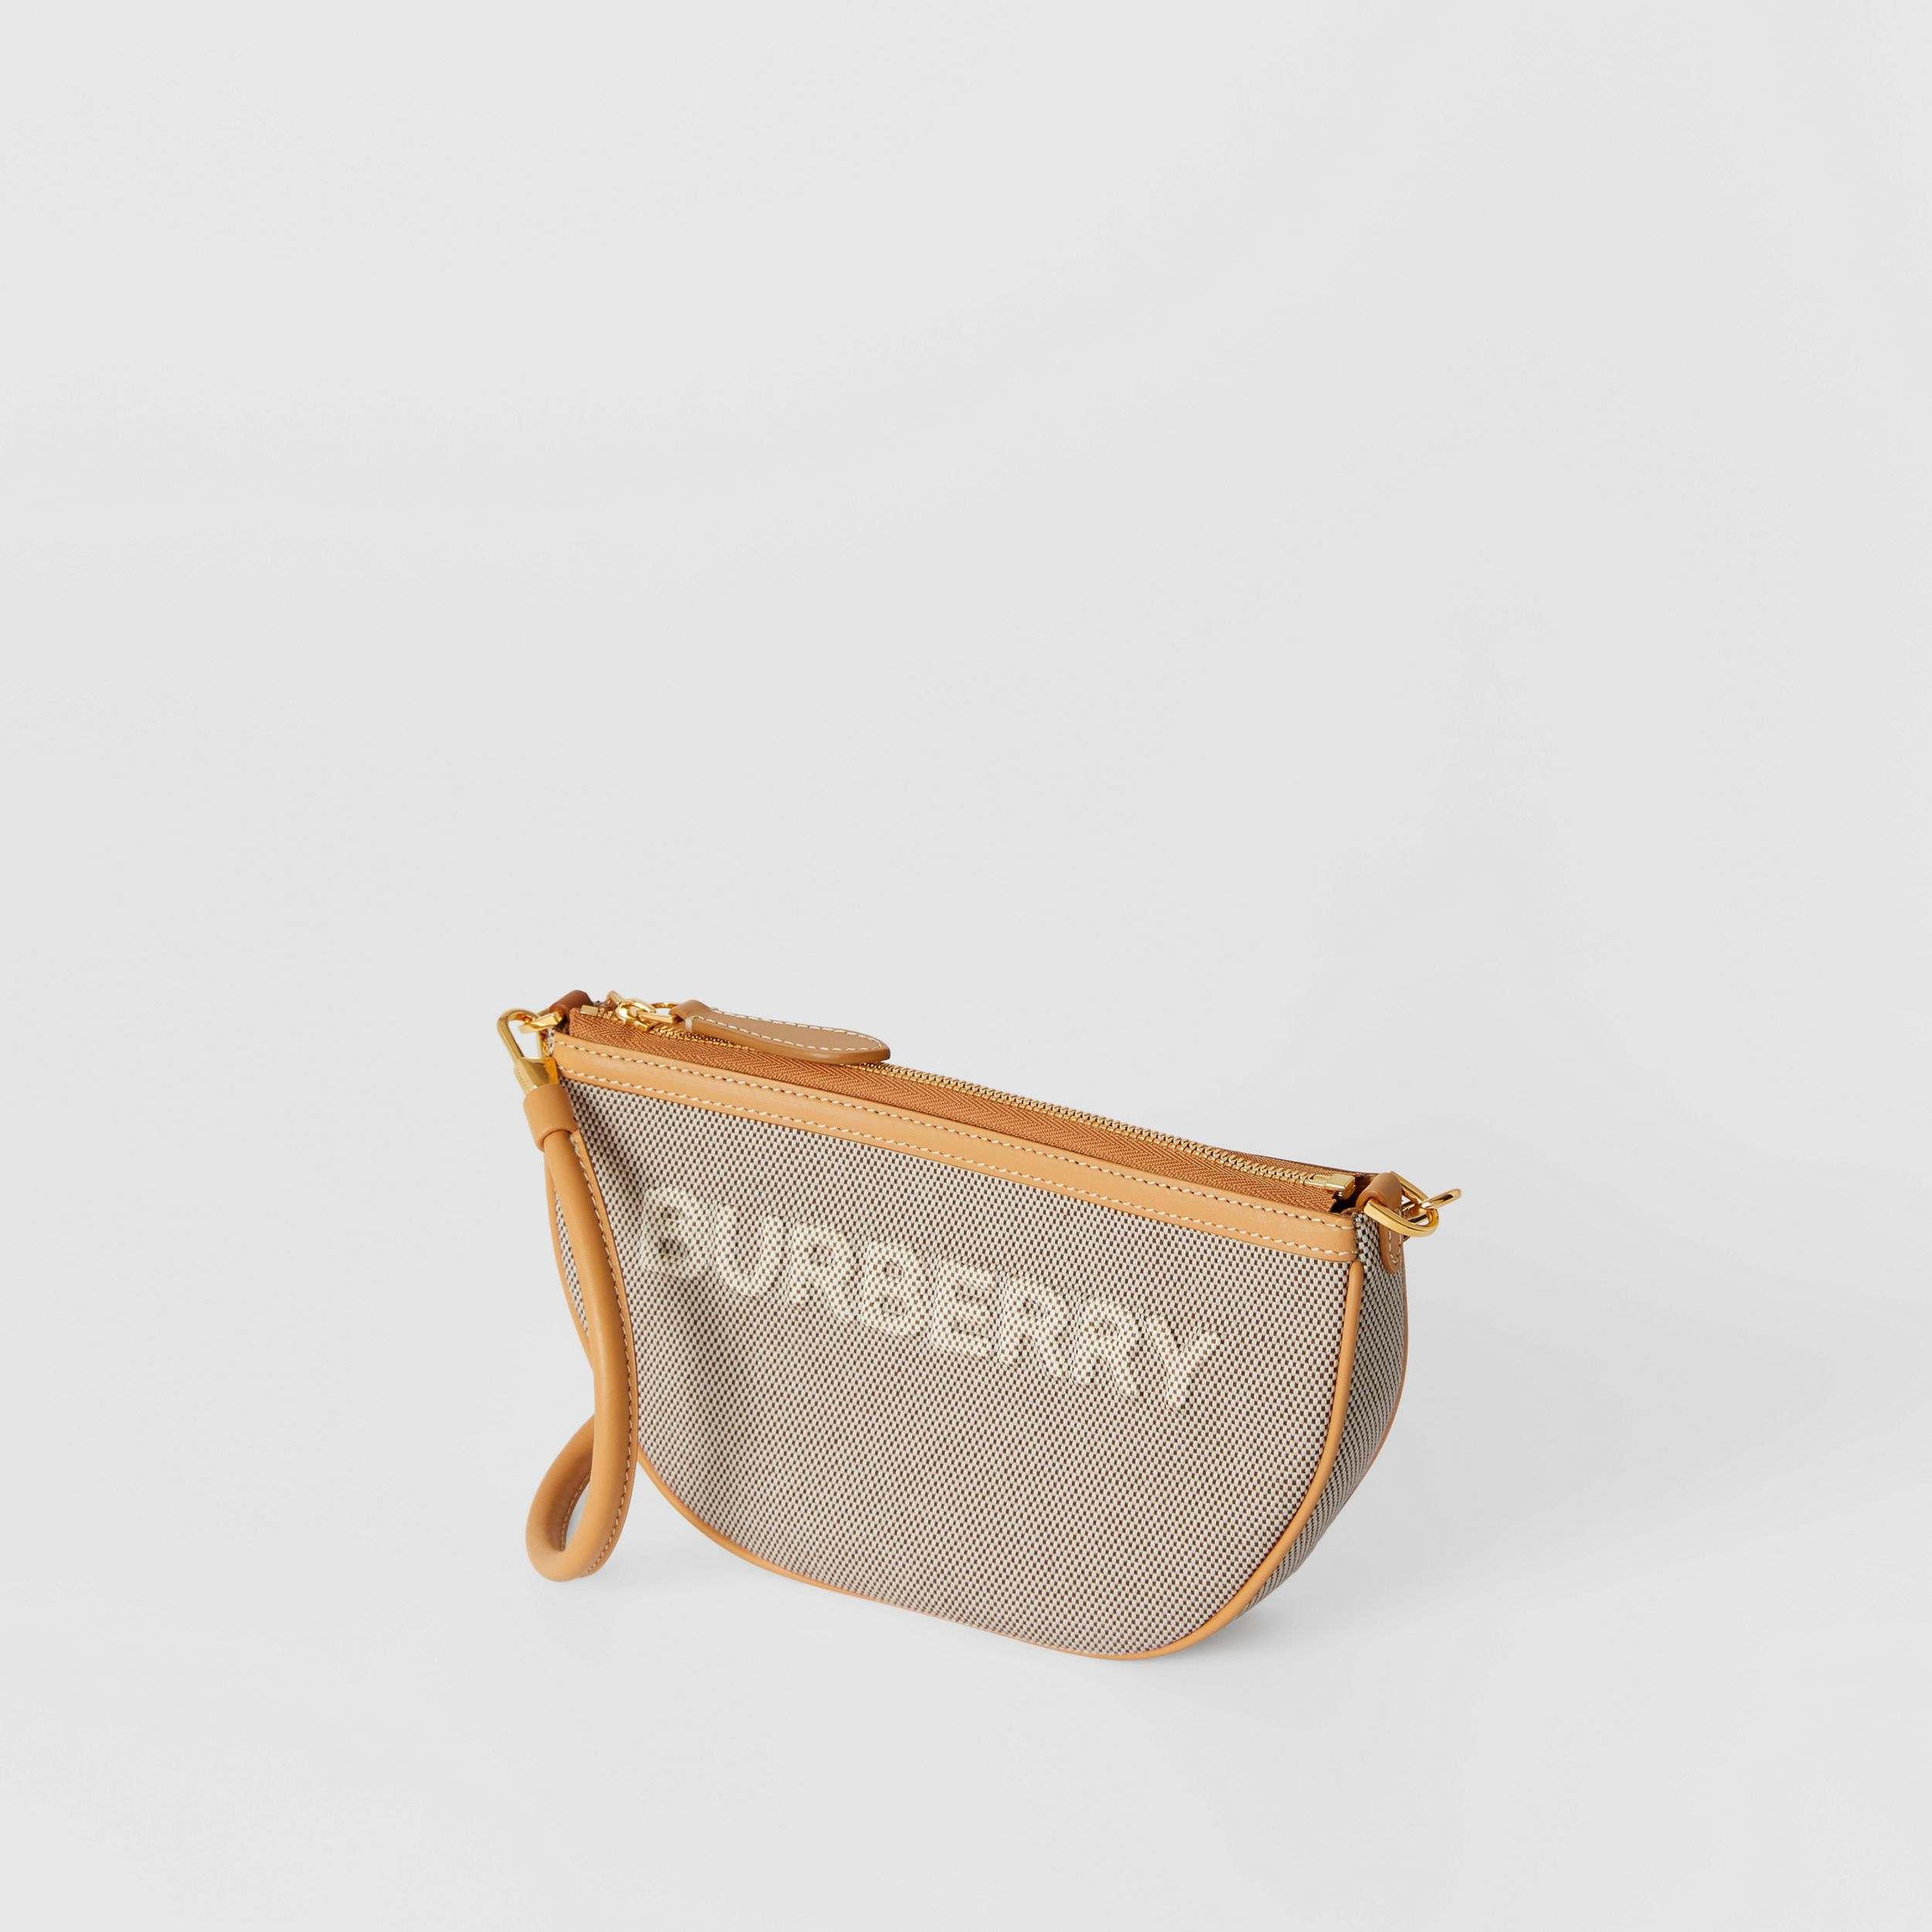 Embossed Logo Canvas and Leather Olympia Pouch in Soft Fawn/warm Sand - Women | Burberry - 4